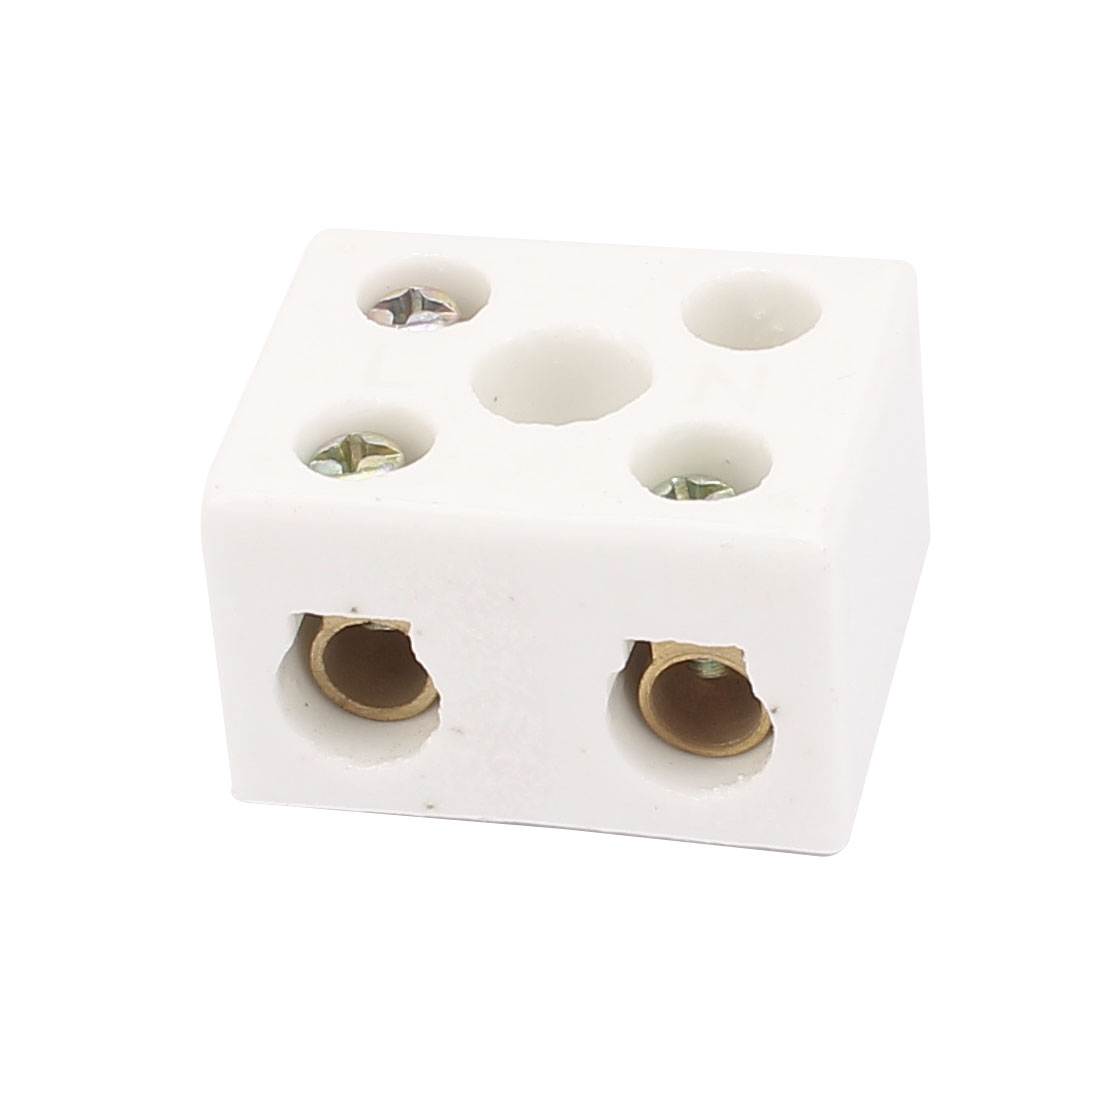 AC 380 25A 2 Way 5 Hole 2W5H Porcelain Ceramic Terminal Block Wire Connector